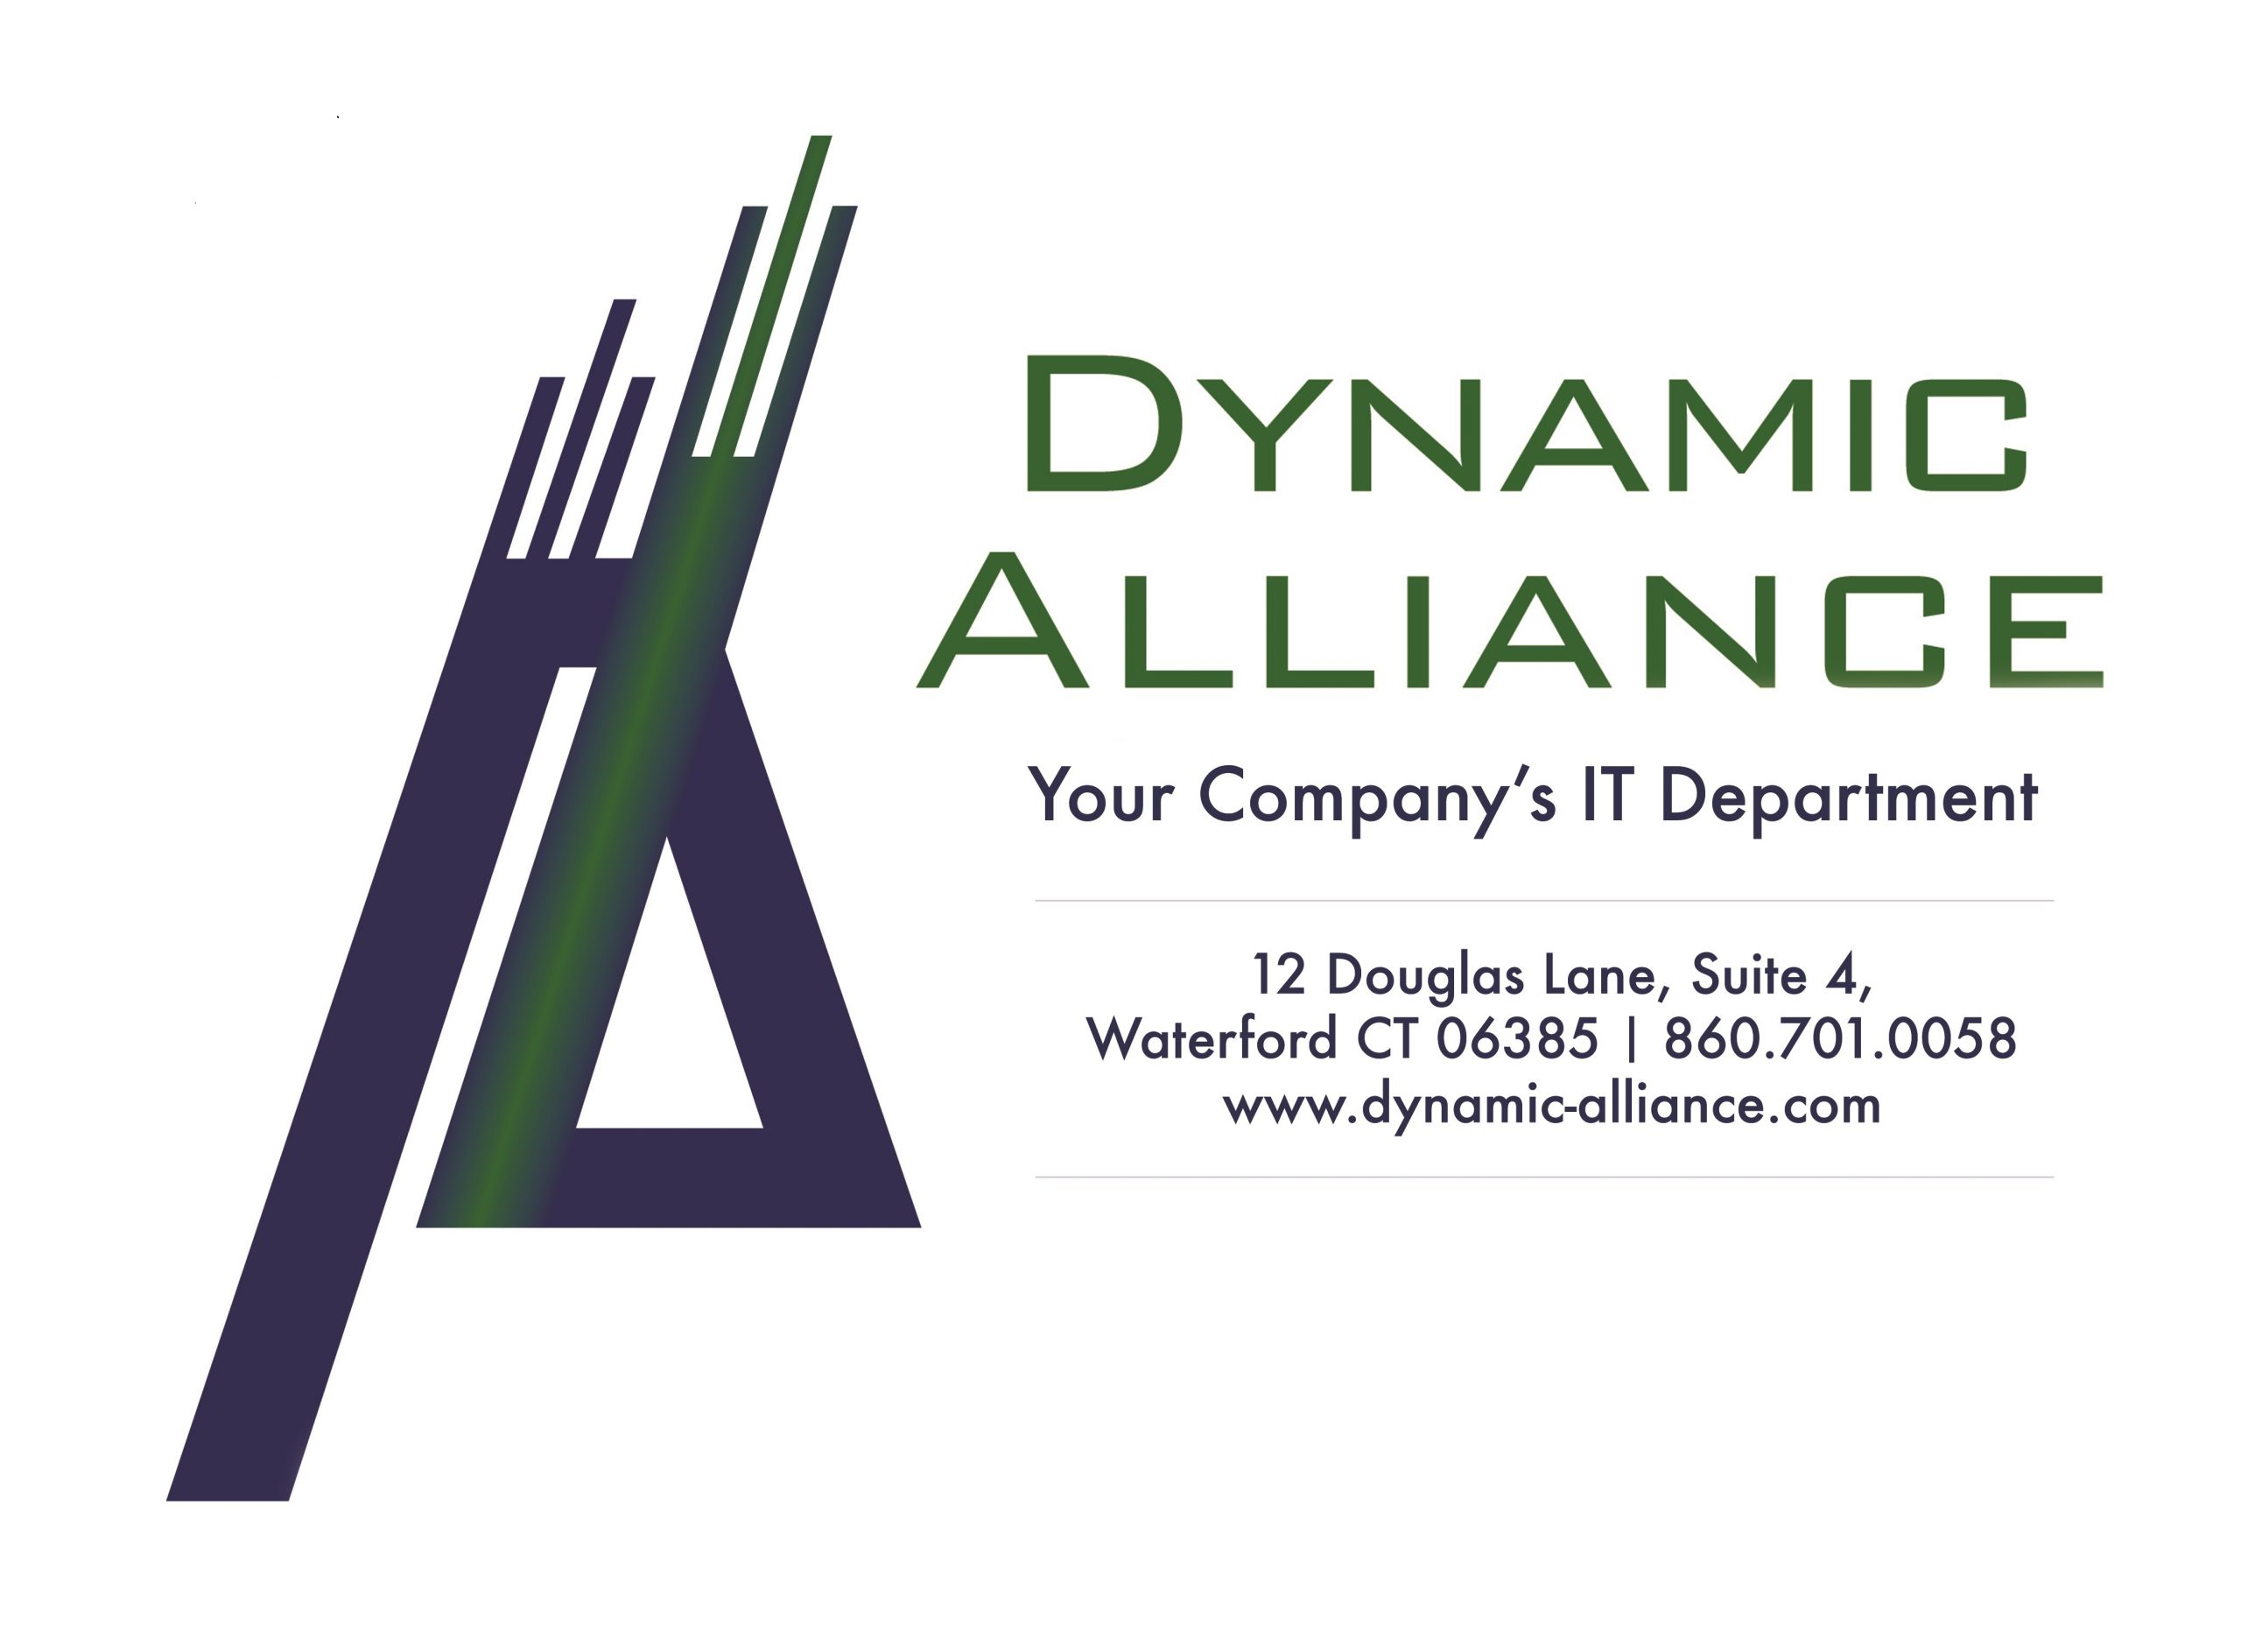 Logo Synmaic Alliance